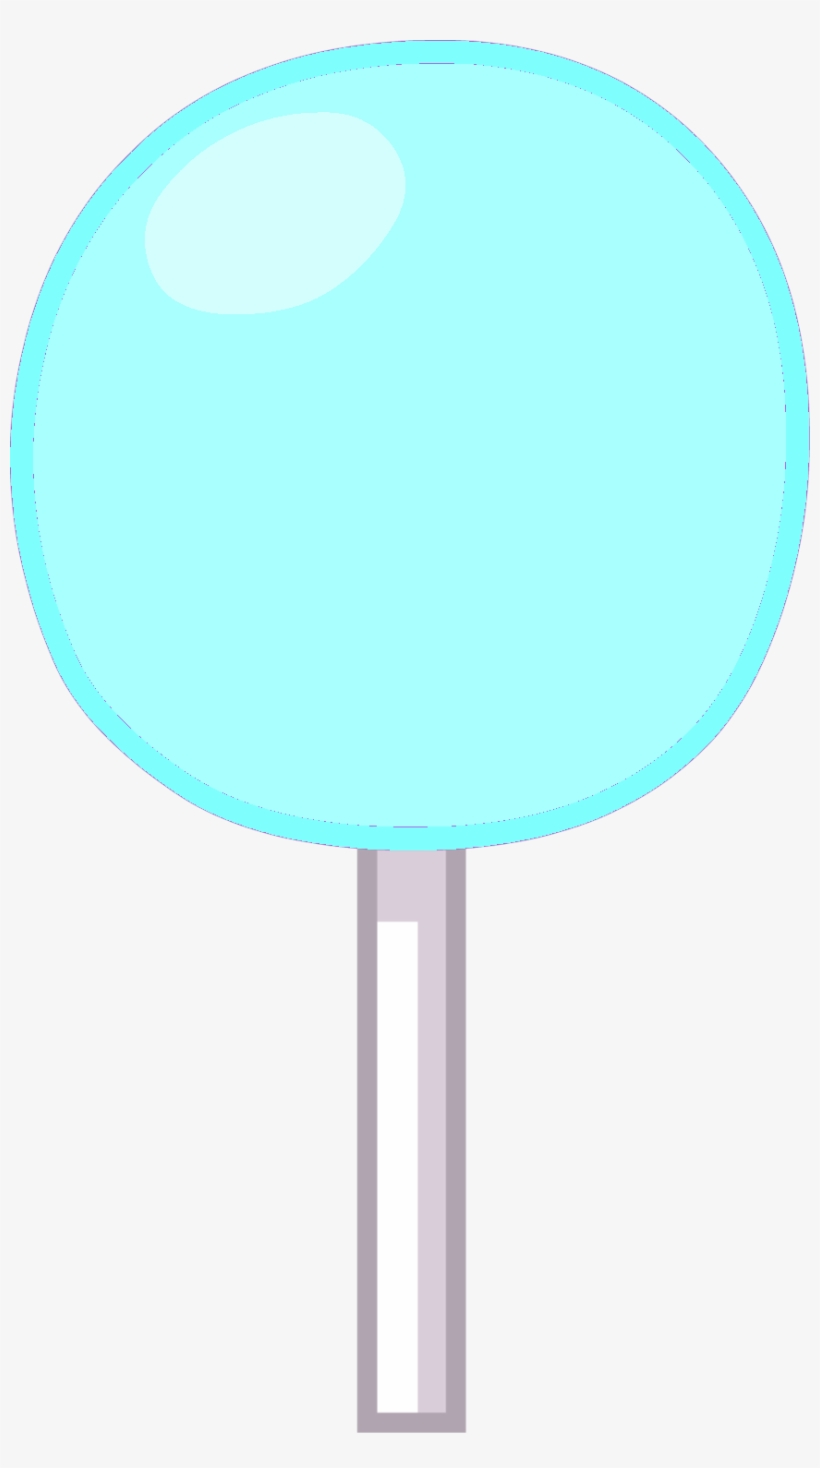 Snow Lollipop Body - Bfb Snow Asset - Free Transparent PNG